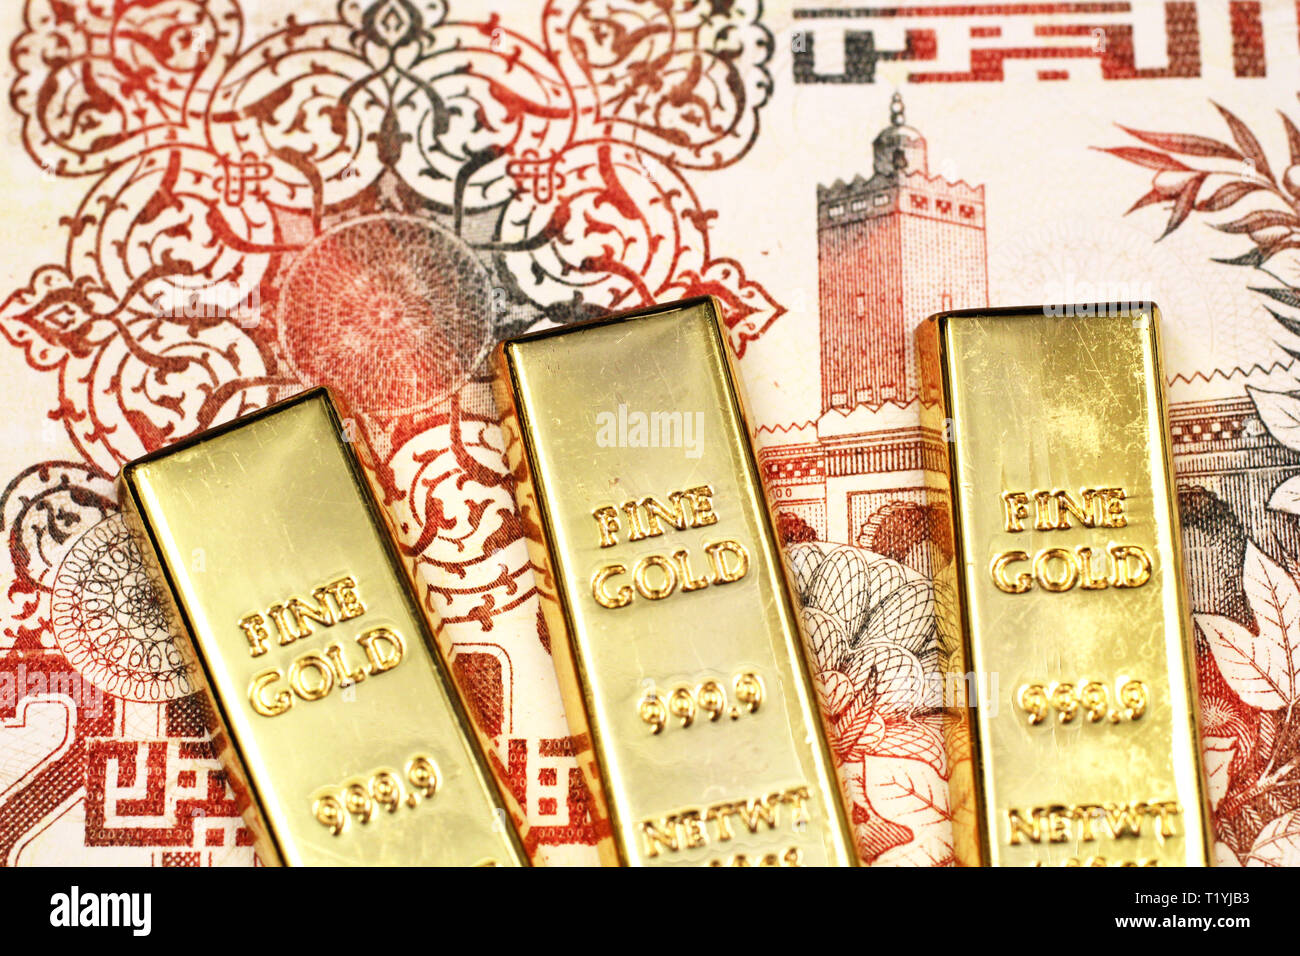 A close up image of a two hundred Algerian dinar bank note with three gold bars in macro - Stock Image